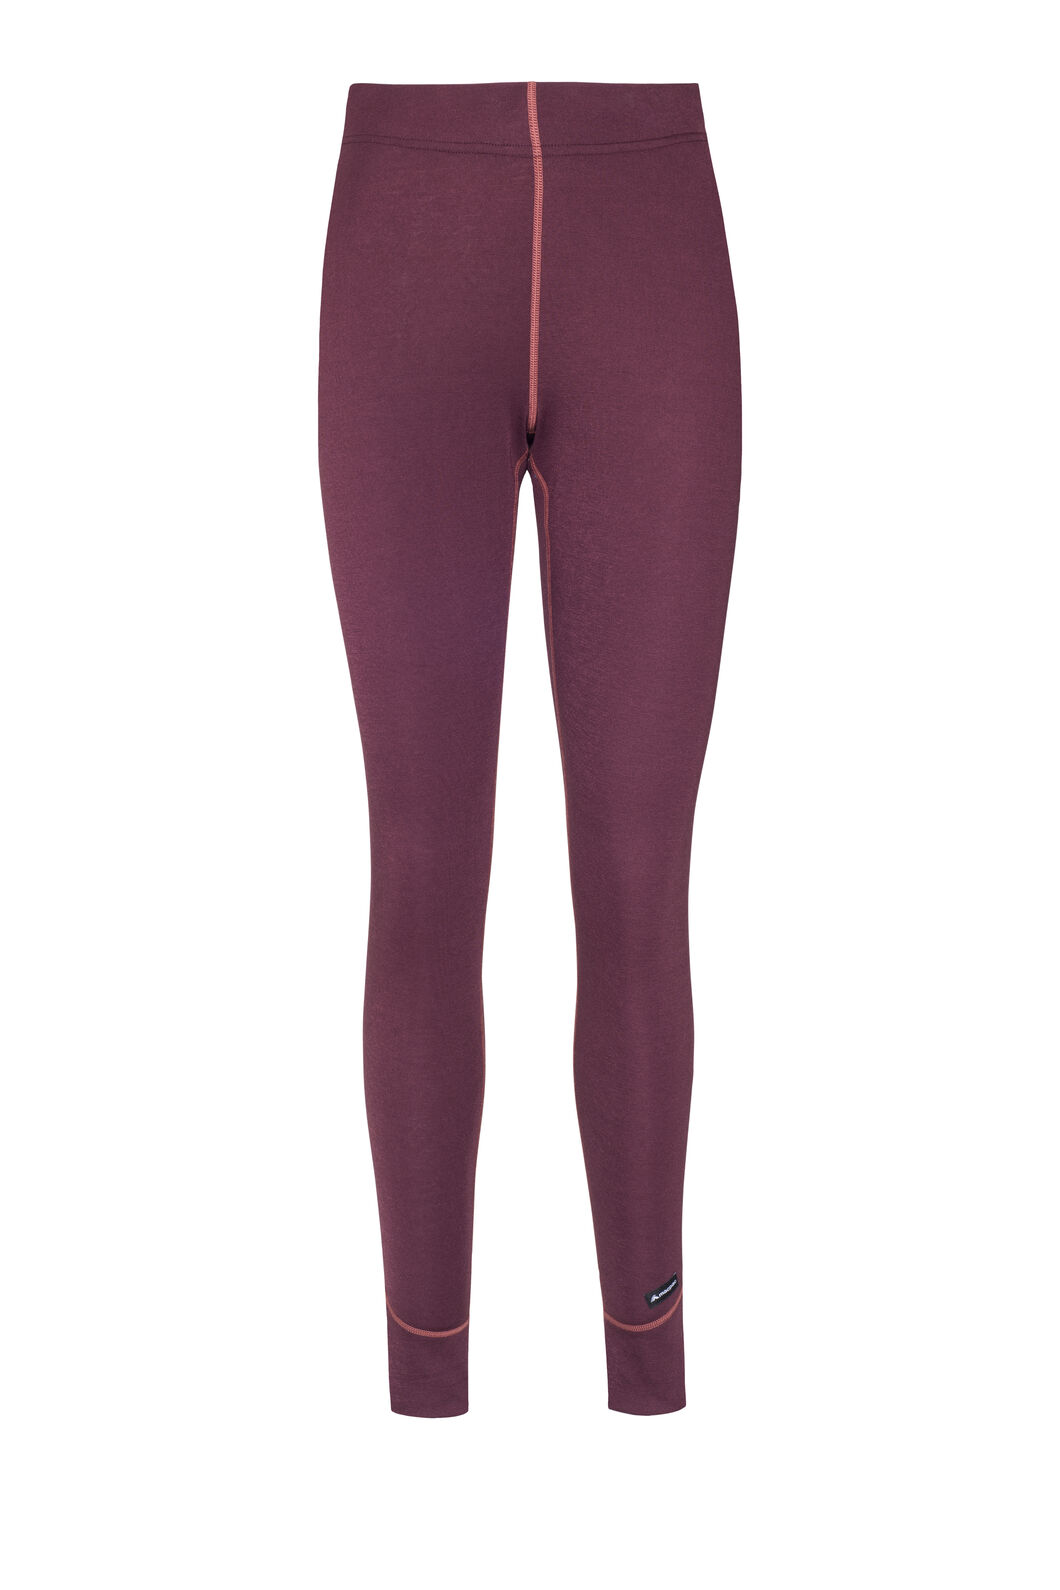 Macpac Geothermal Long Johns — Women's, Vineyard Wine, hi-res